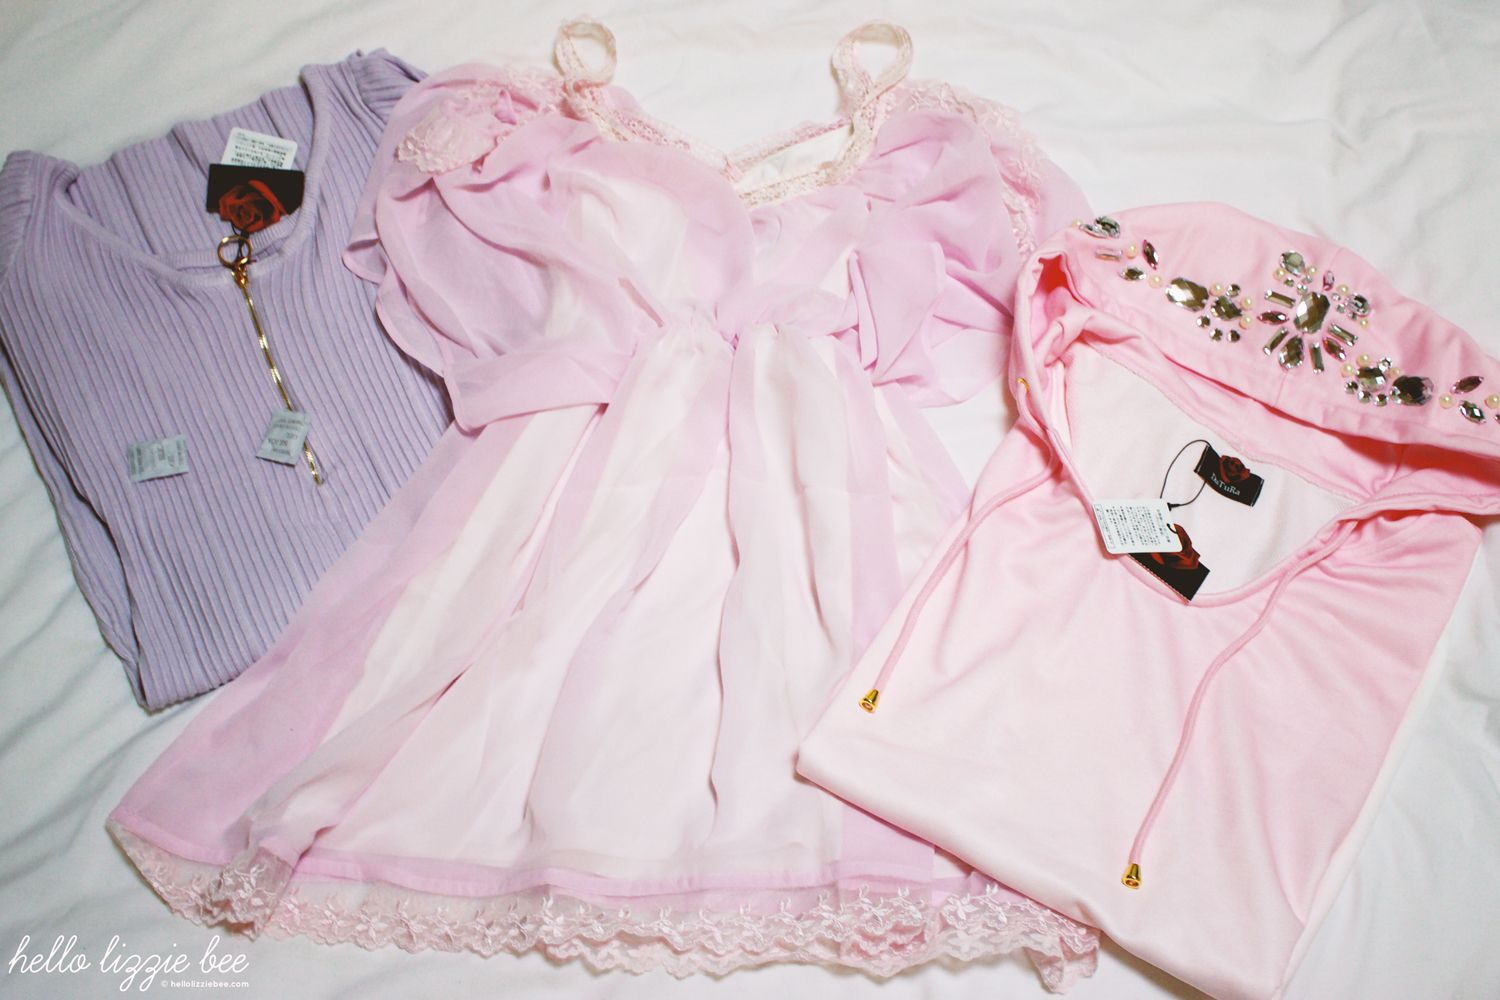 DaTuRa summer clothing, gyaru brand